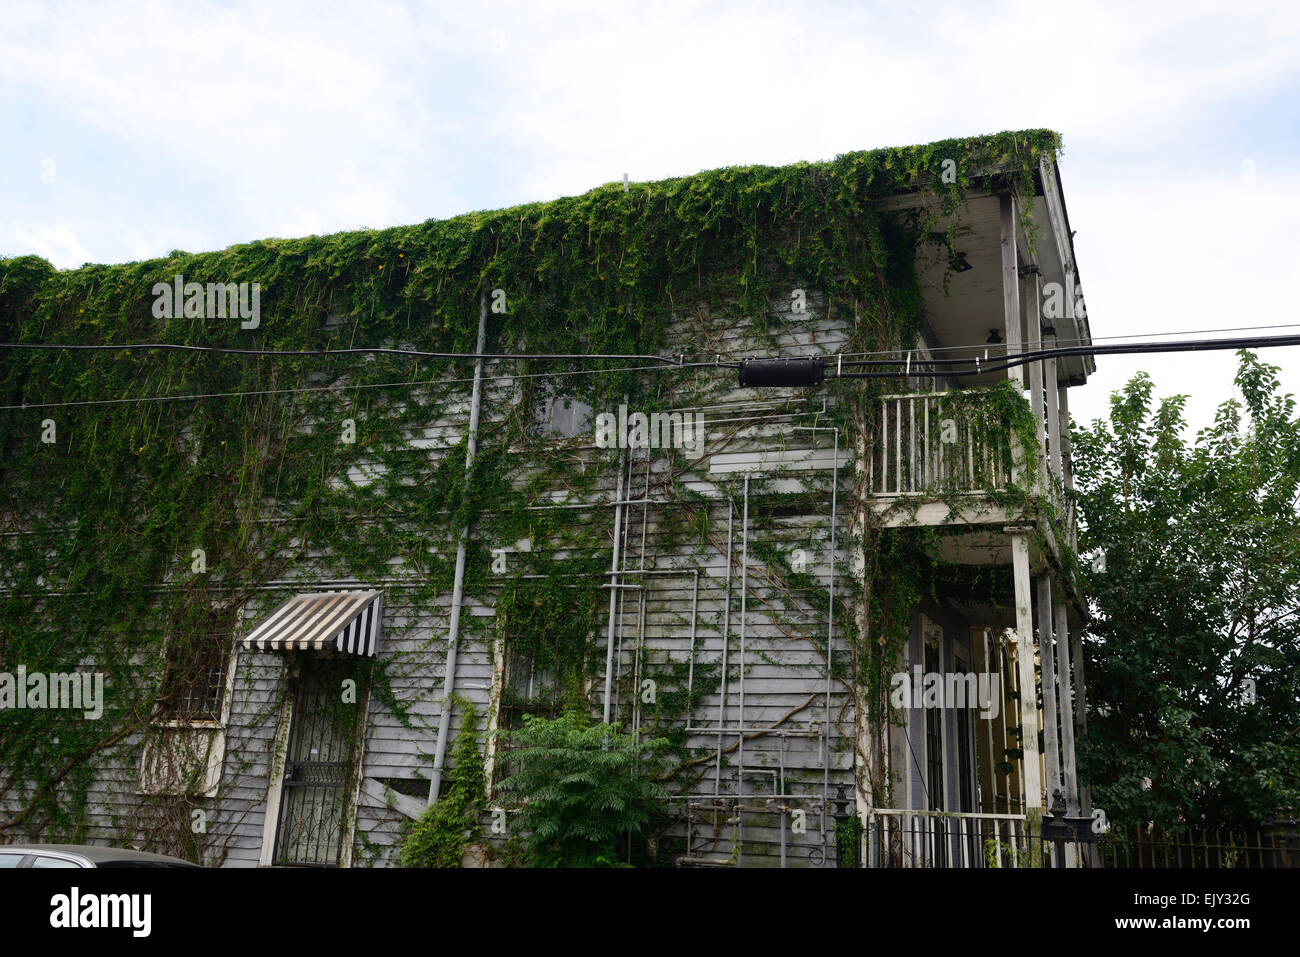 creeper cover covered house derelict delinquent decrepit property abandon abandoned properties RM USA - Stock Image